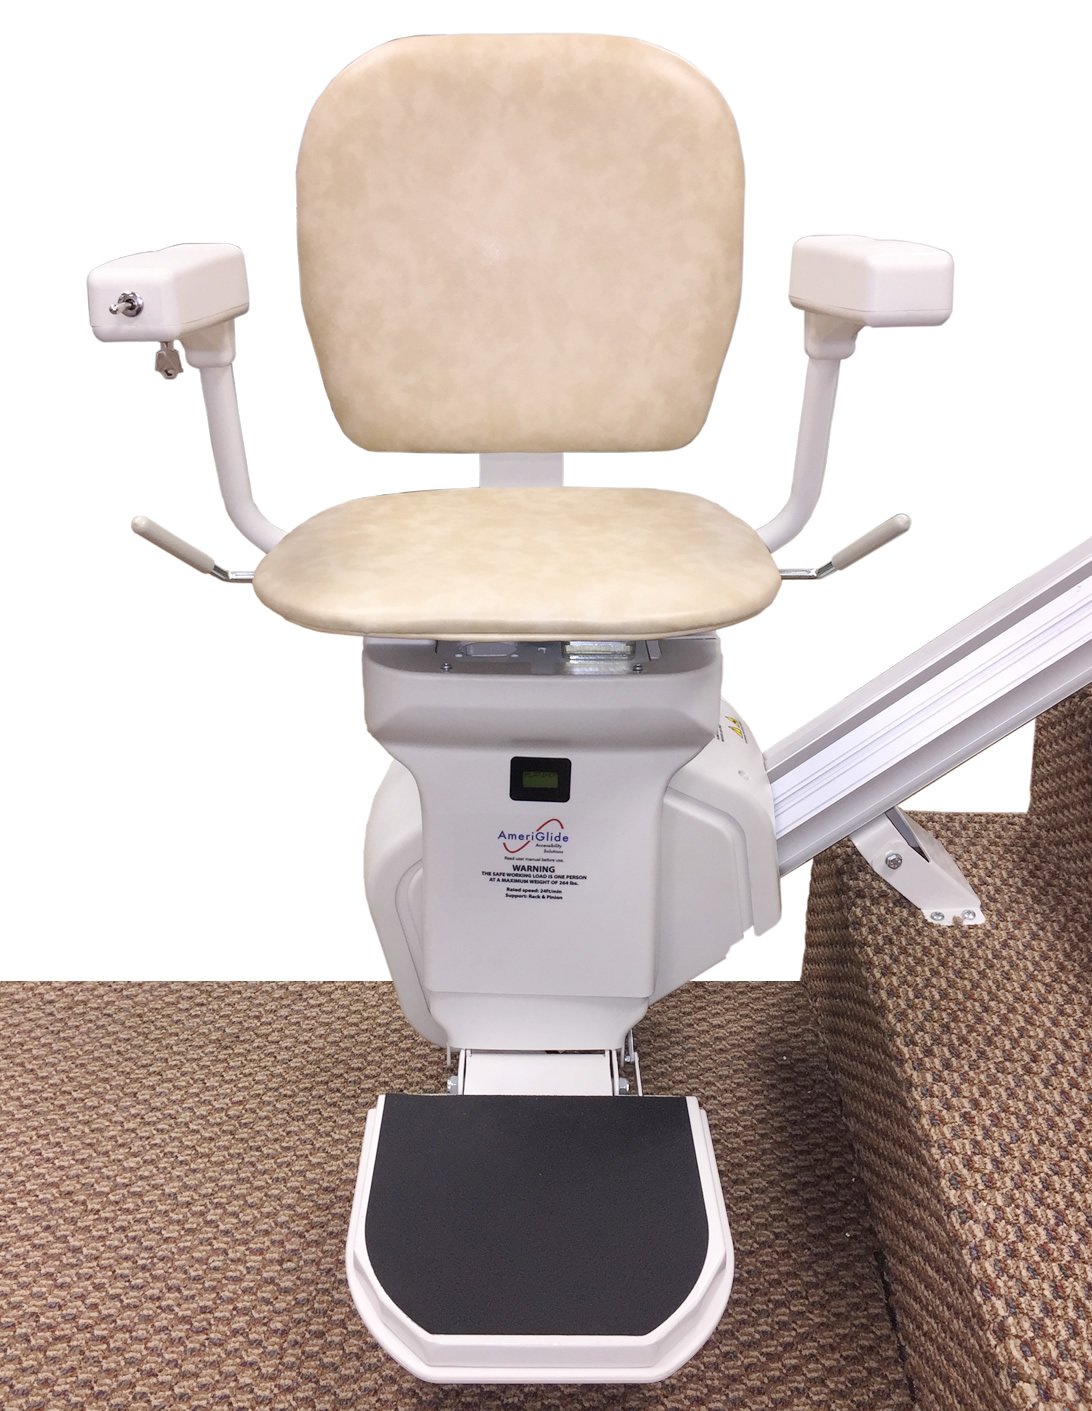 wheelchair lift cost genuine leather dining chairs melbourne ameriglide stair lifts tulsa broken arrow claremore